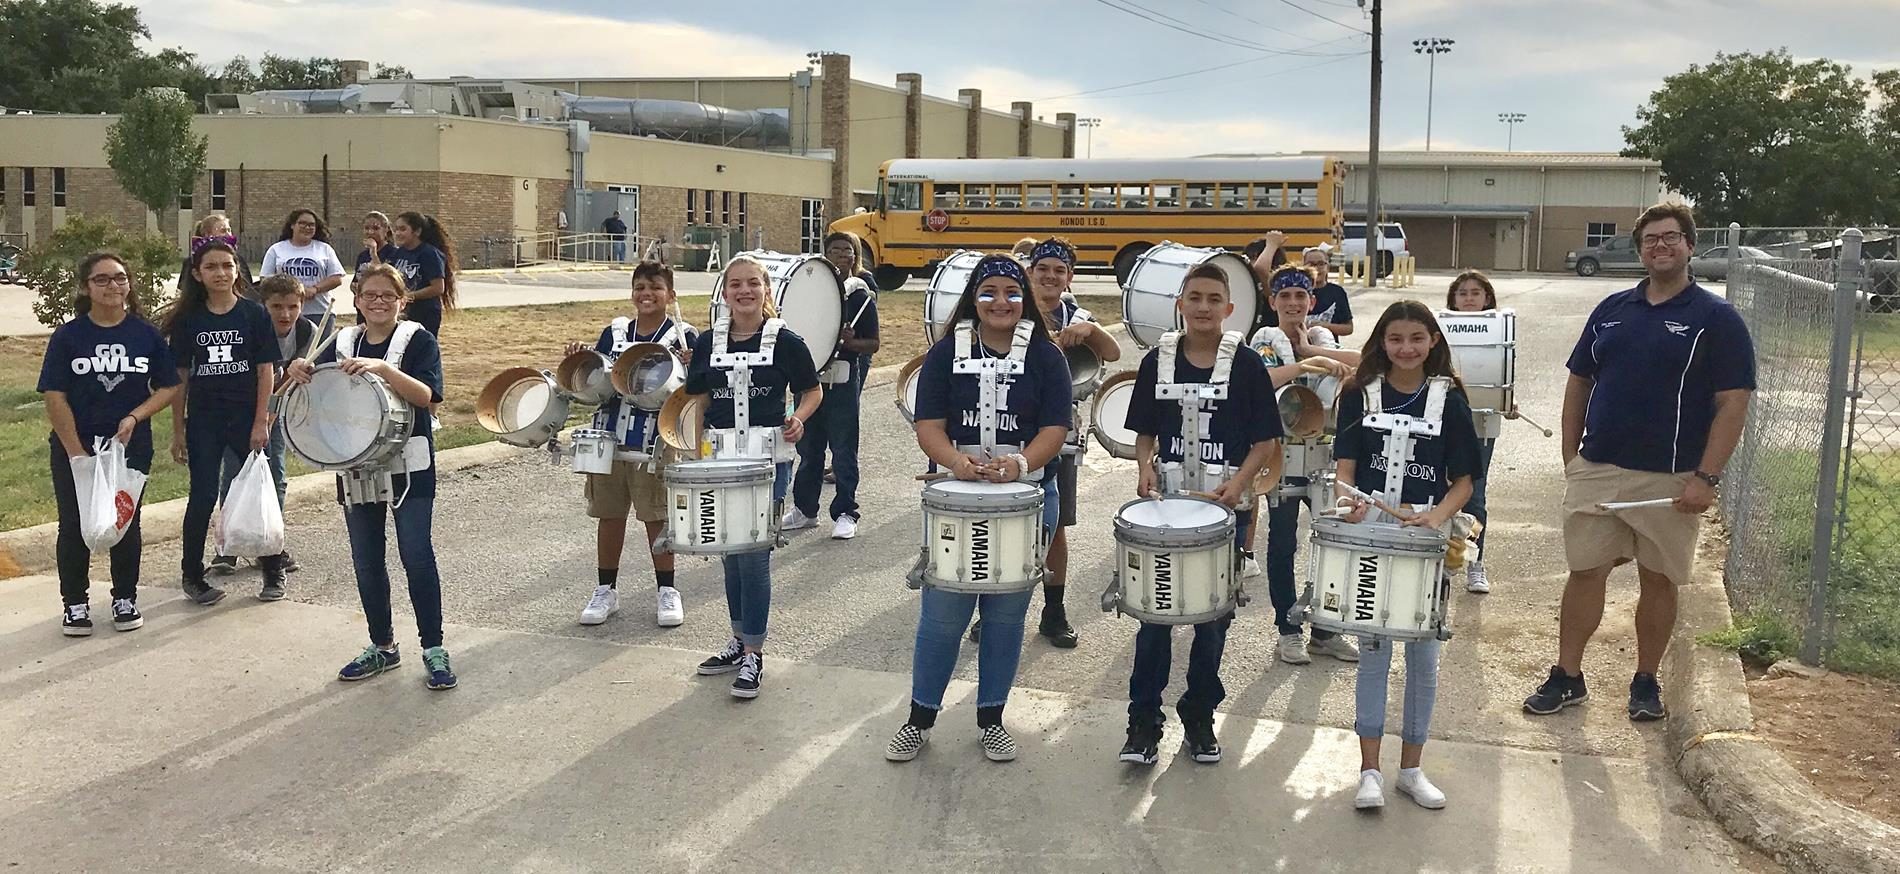 McDowell DrumLine ready for parade